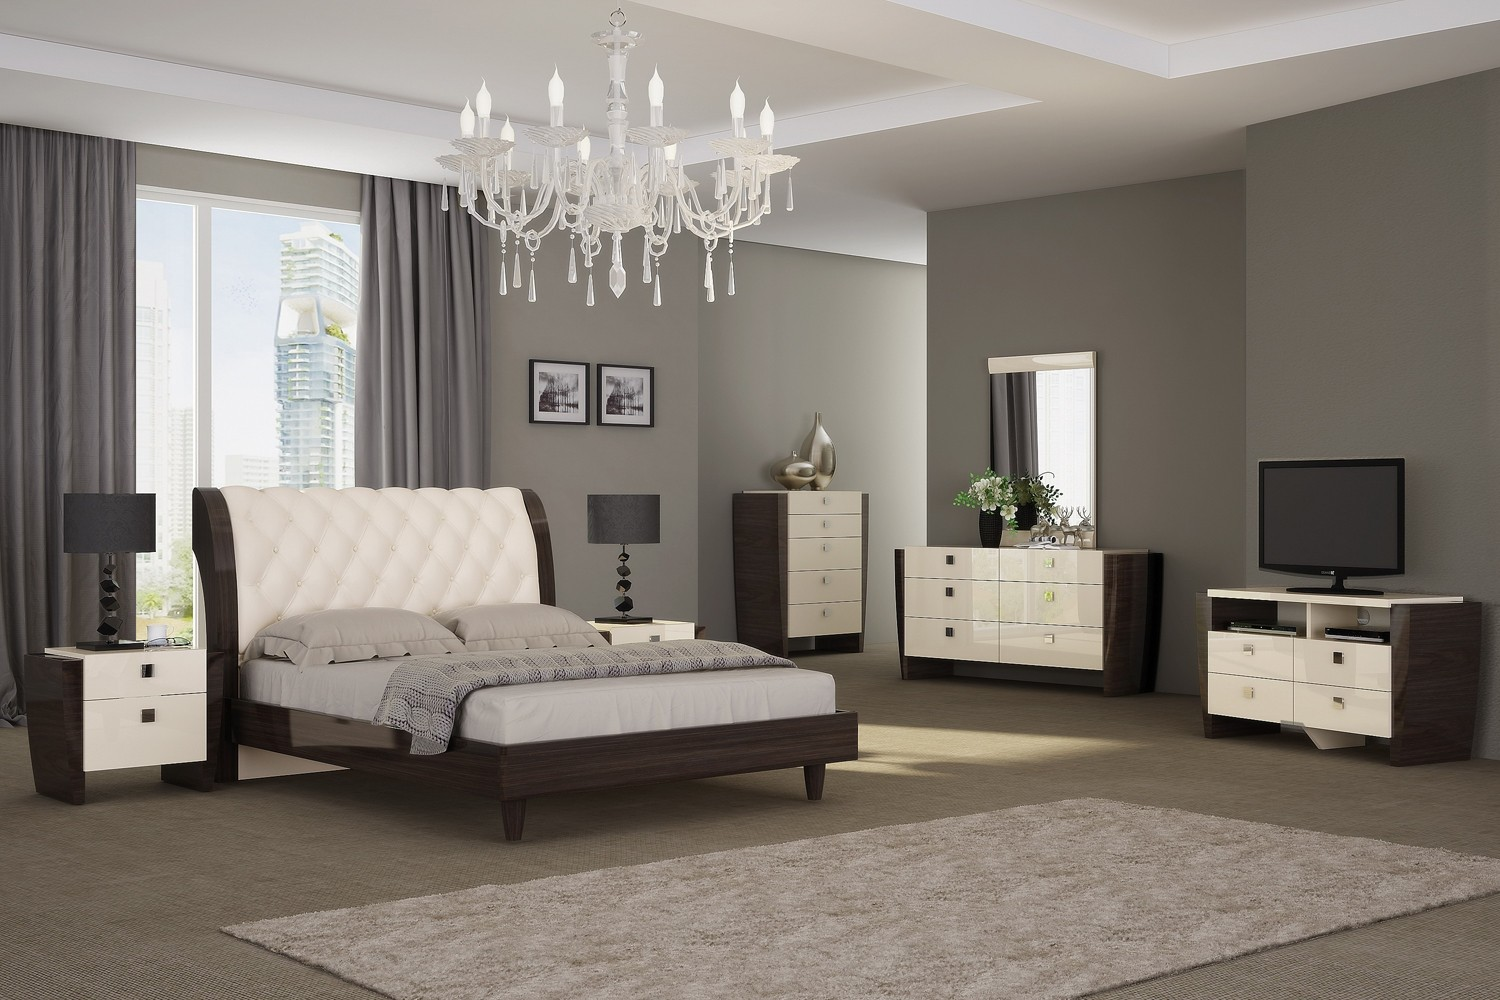 milan bedroom set beige wenge star modern furniture 16439 | paris enl